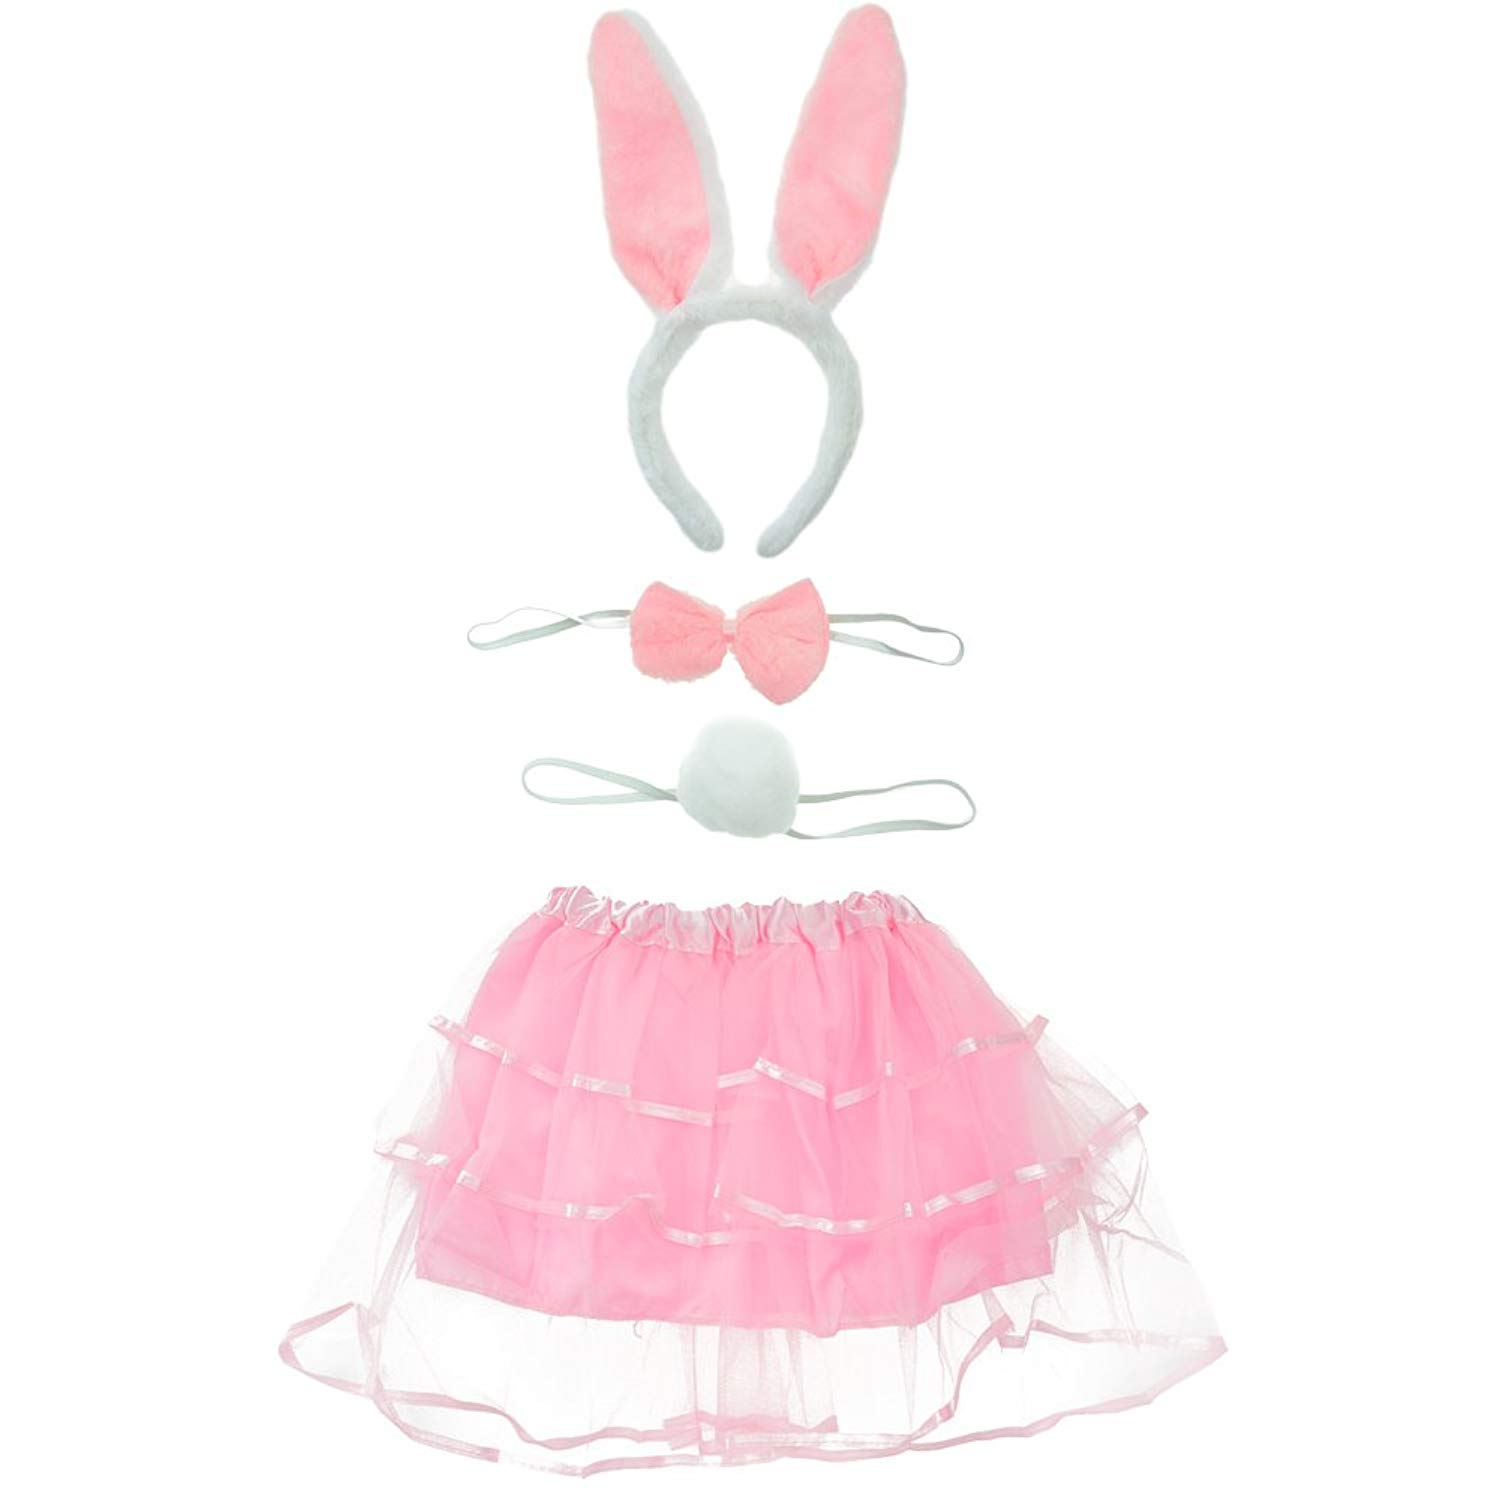 BCP Animals Bunny Rabbit Ears Tail and Bow Tie Cosplay Party Halloween Costume kit Gray